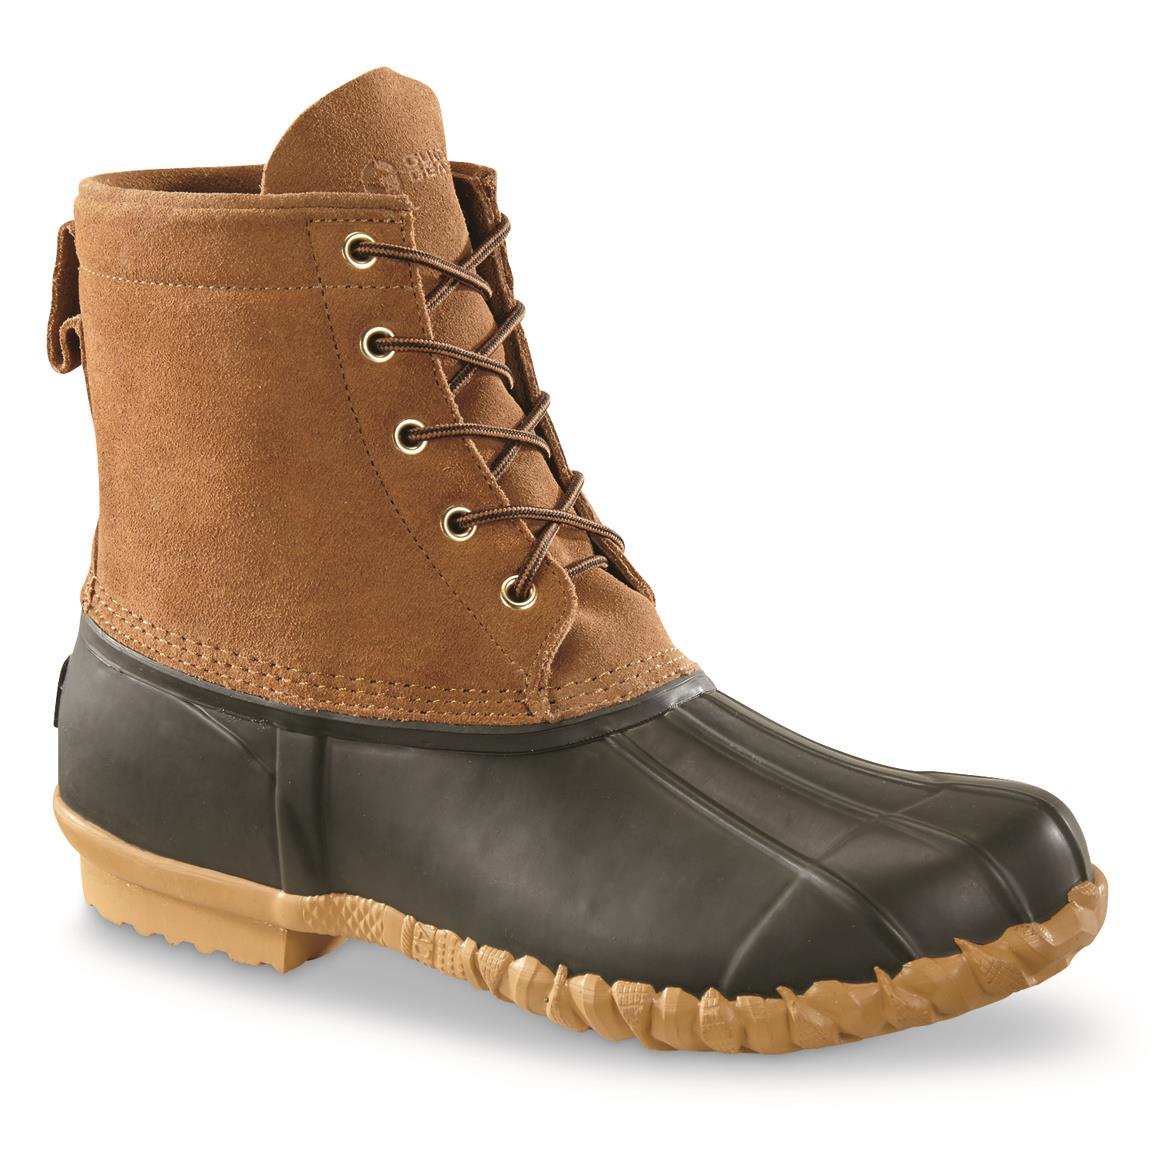 Guide Gear Lace-Up Insulated Duck Boots